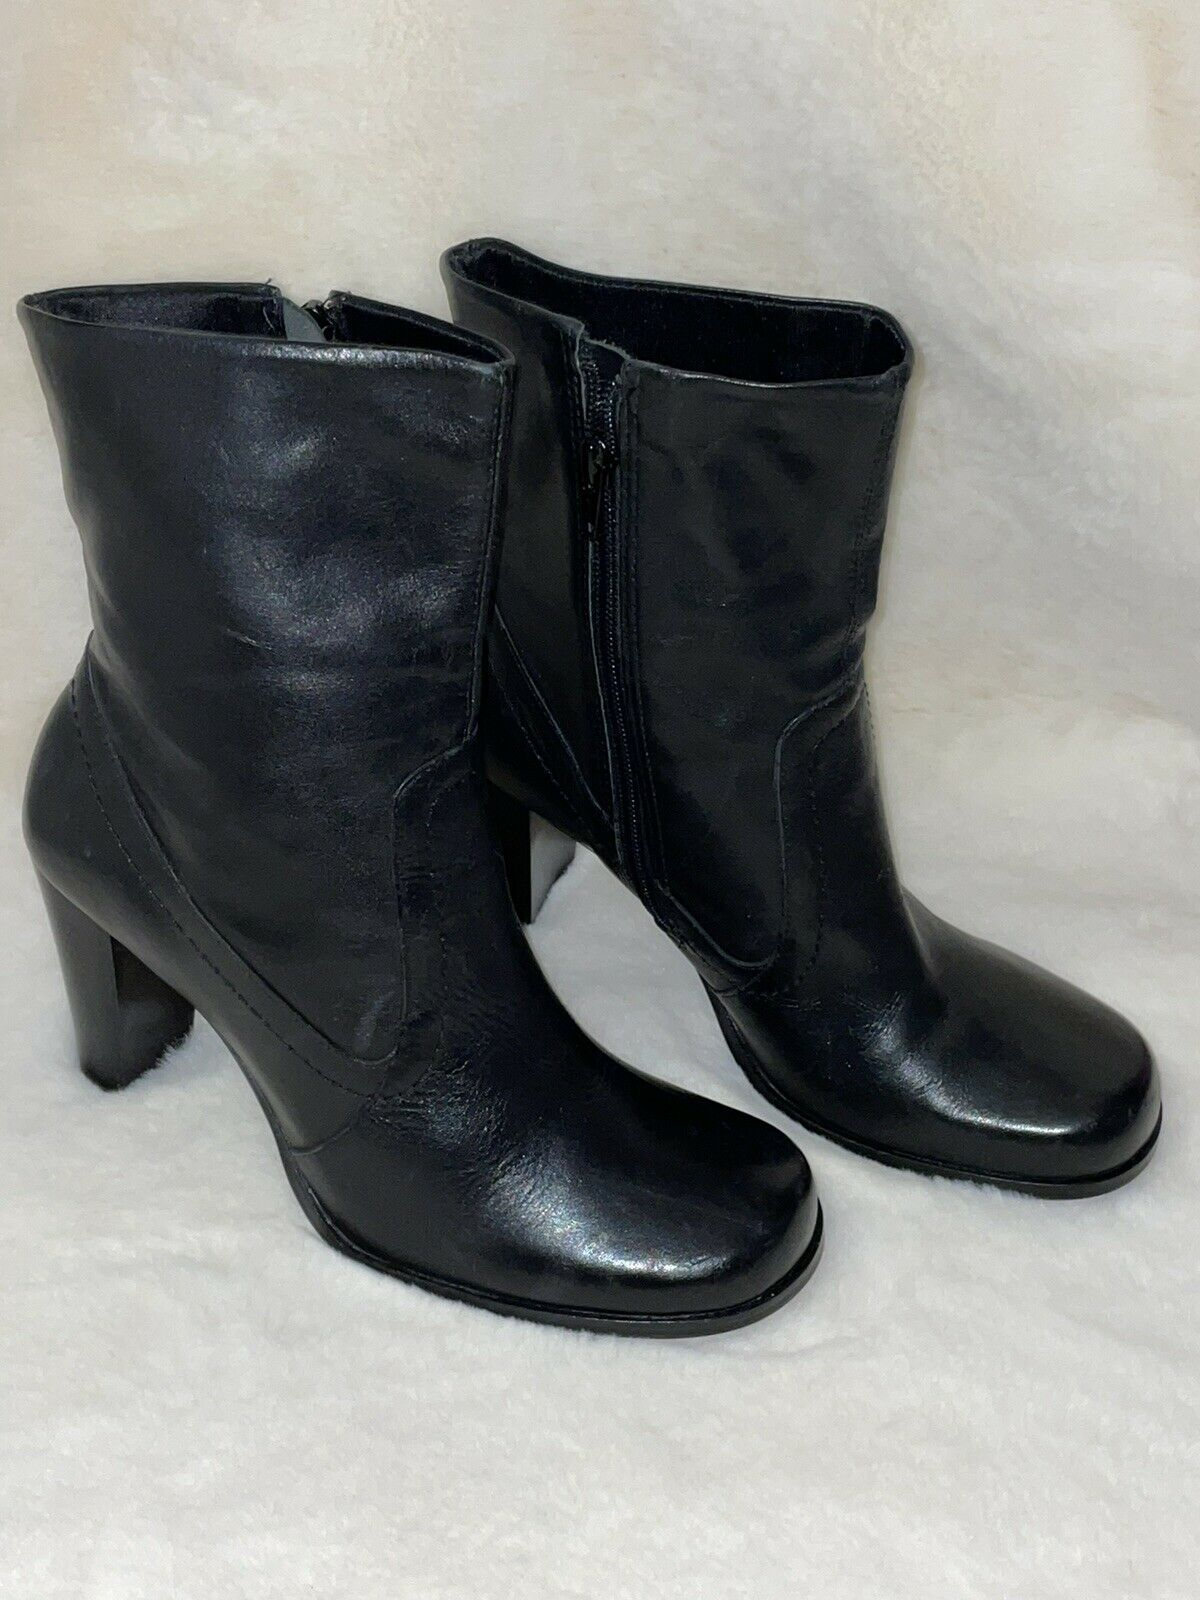 BRAND NEW WITH LABELS! Faith Size 6 Black Leather Block Heel Ankle Boots Zip